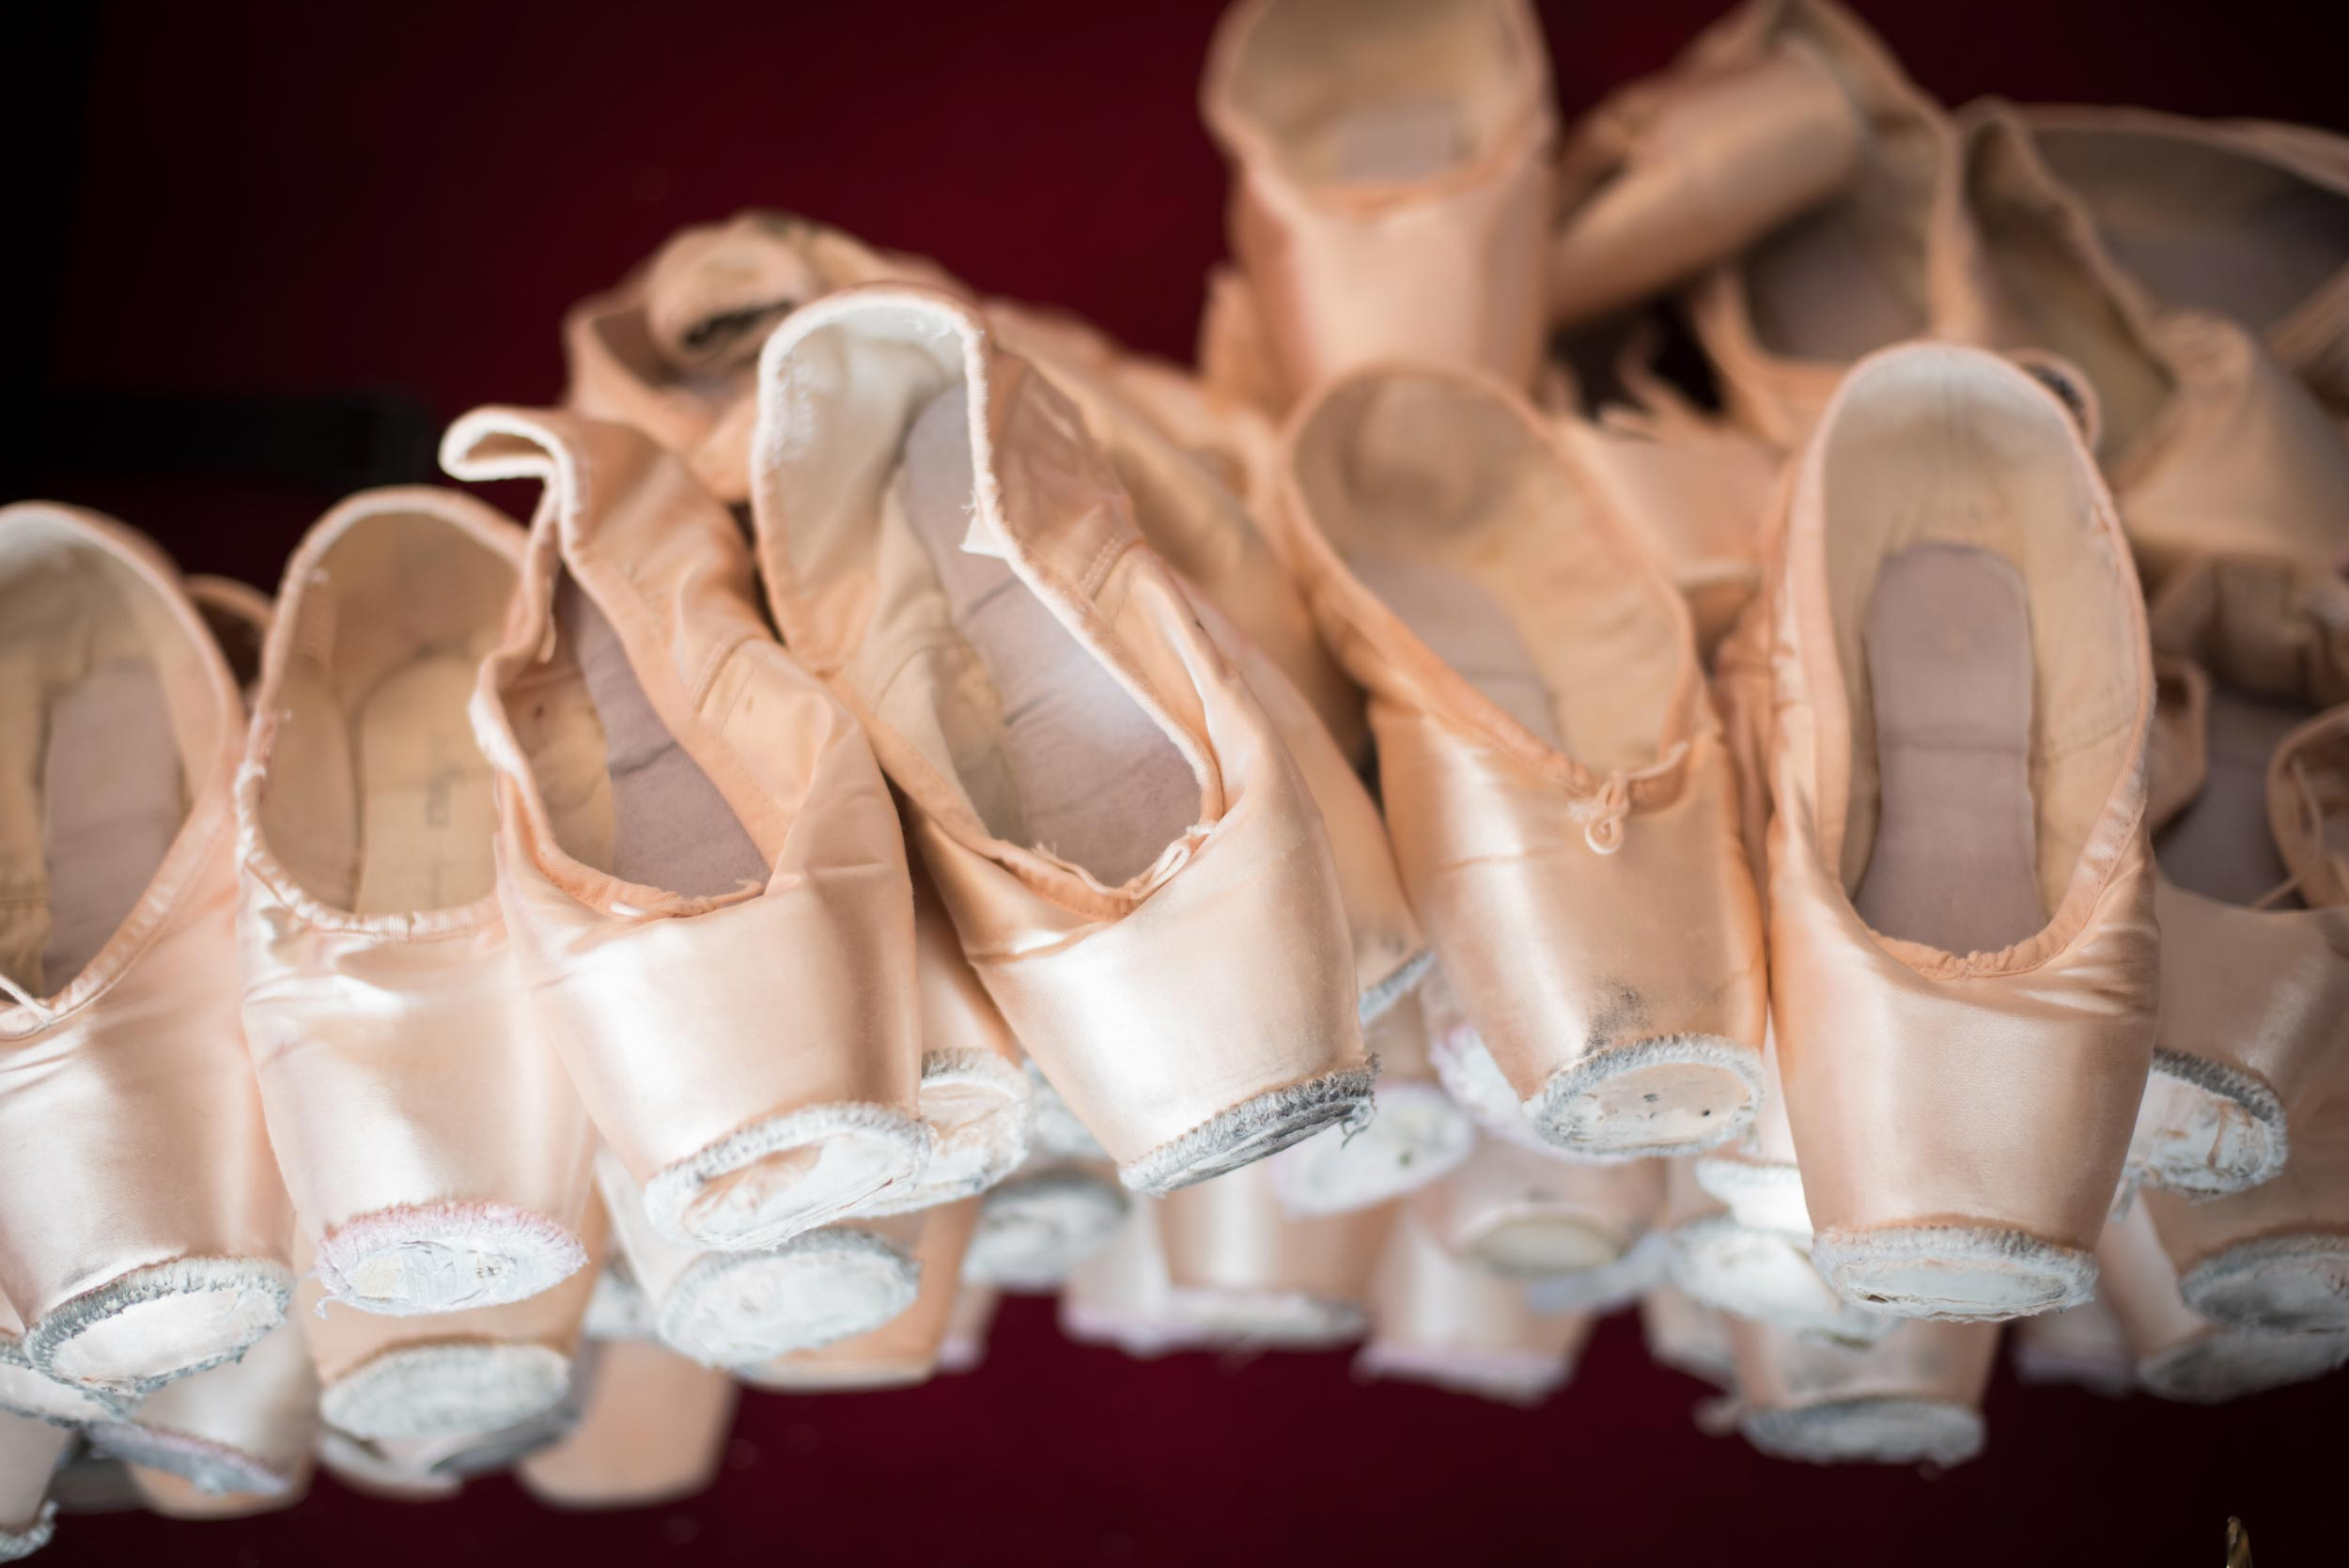 Pointe-Shoe-Christmas-Tree-(c)-Photograhy-by-ASH